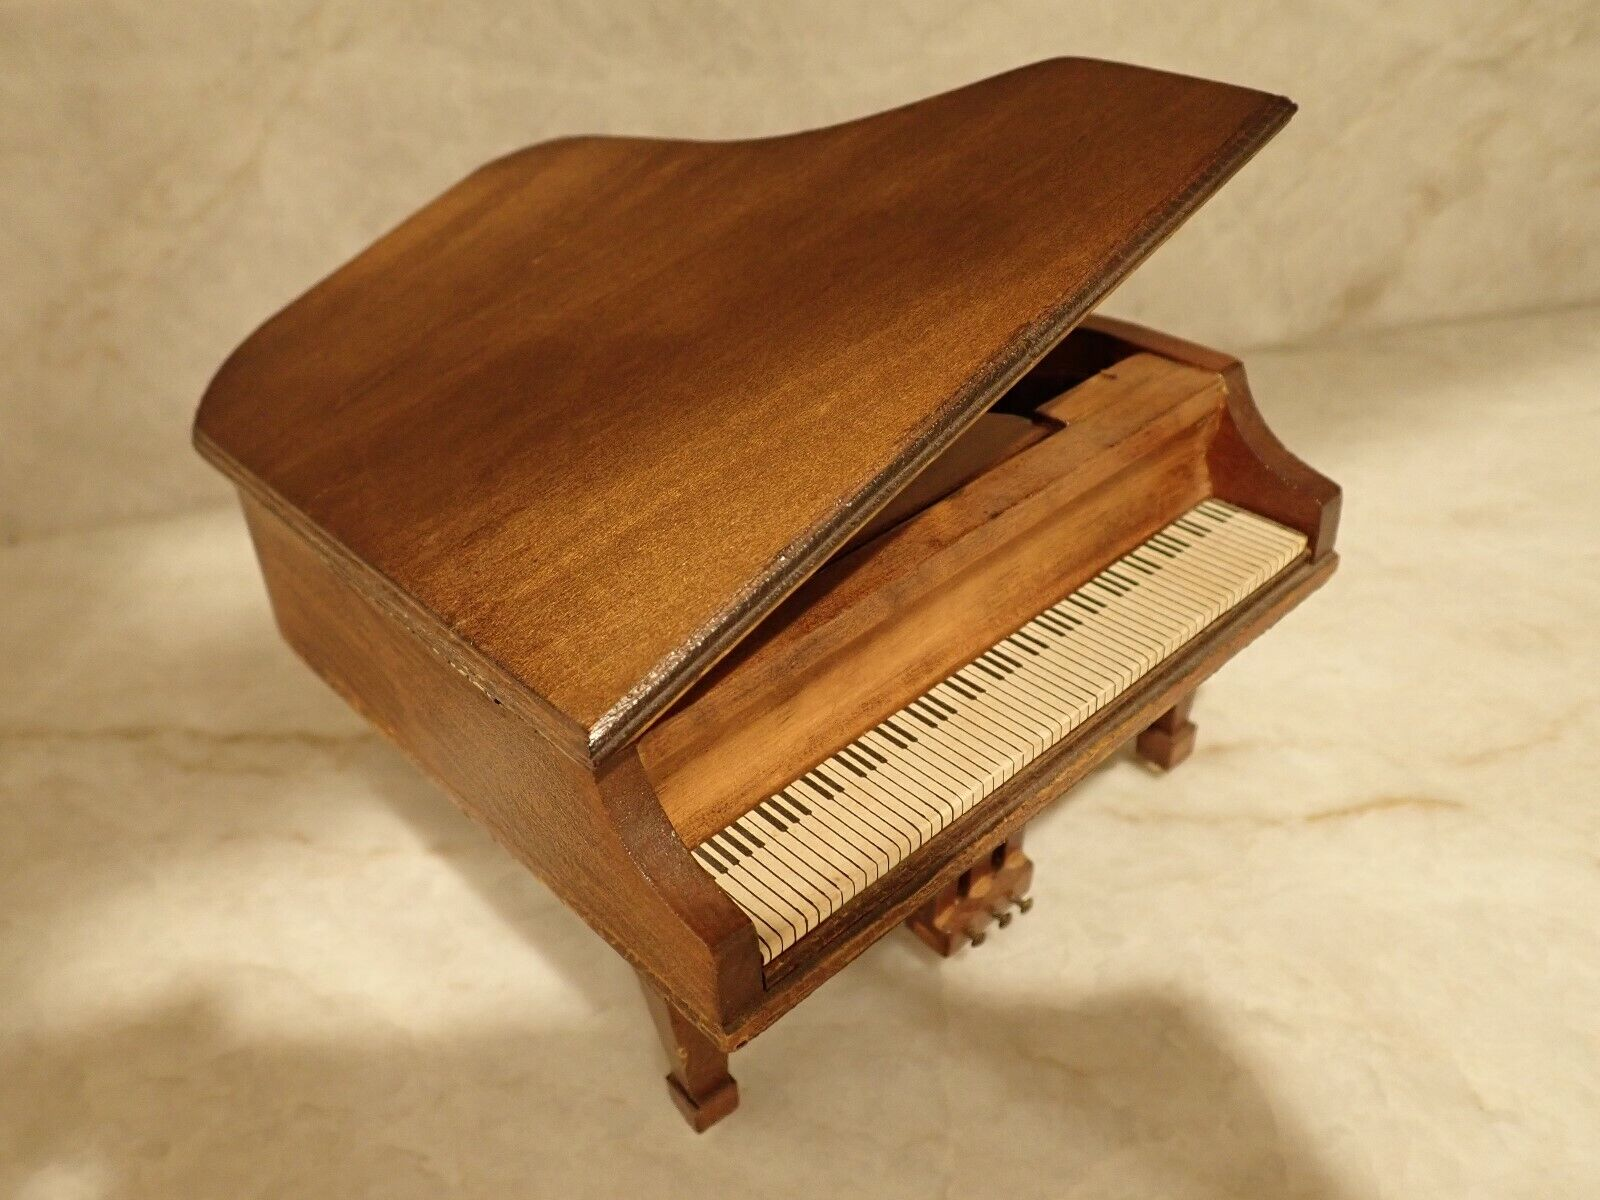 Jahr Dollhaus Piano Music Box